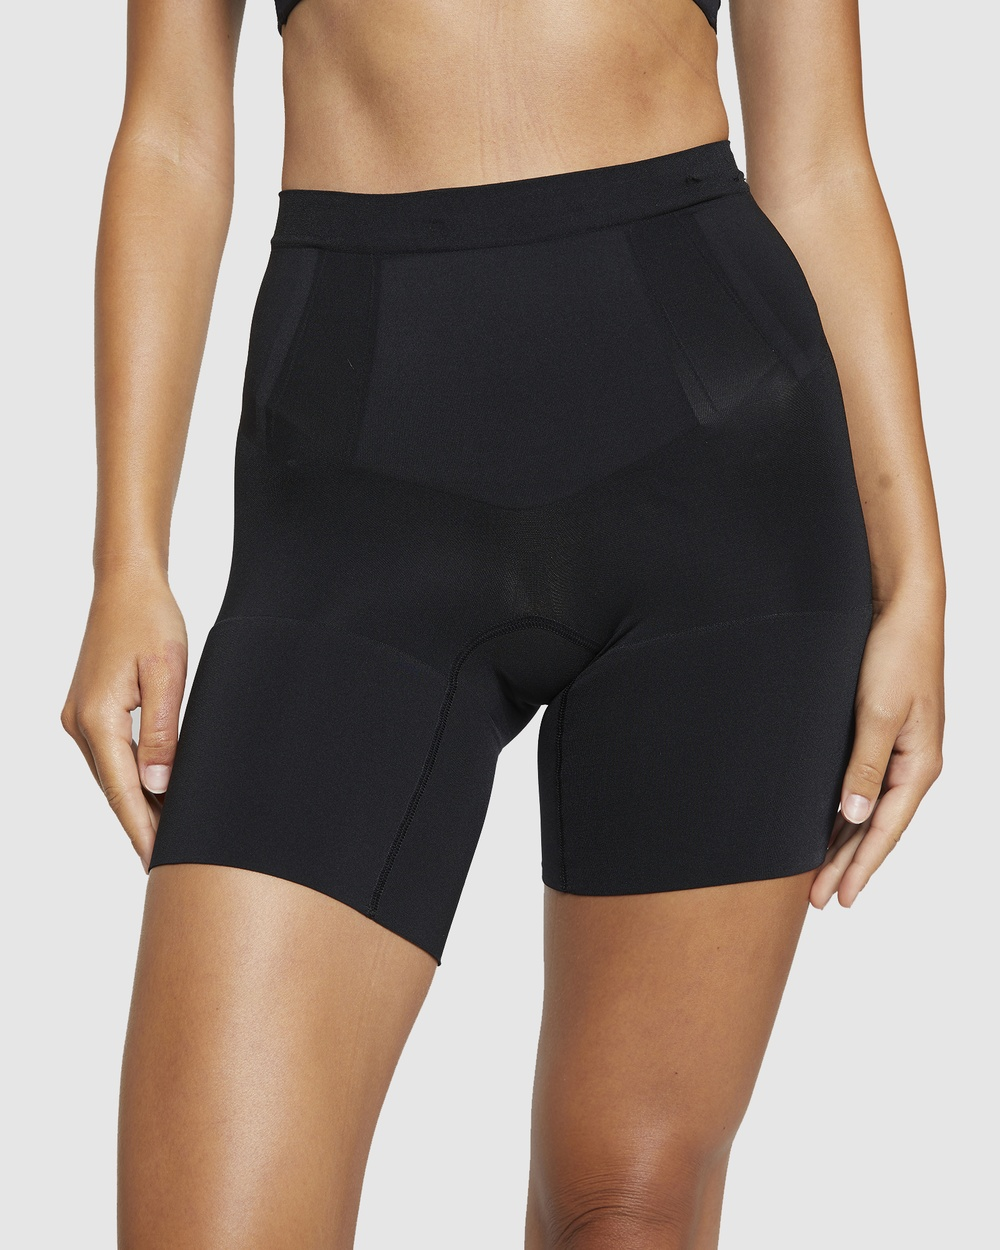 Spanx Oncore High Waisted Mid Thigh Shorts Lingerie Black High-Waisted Mid-Thigh